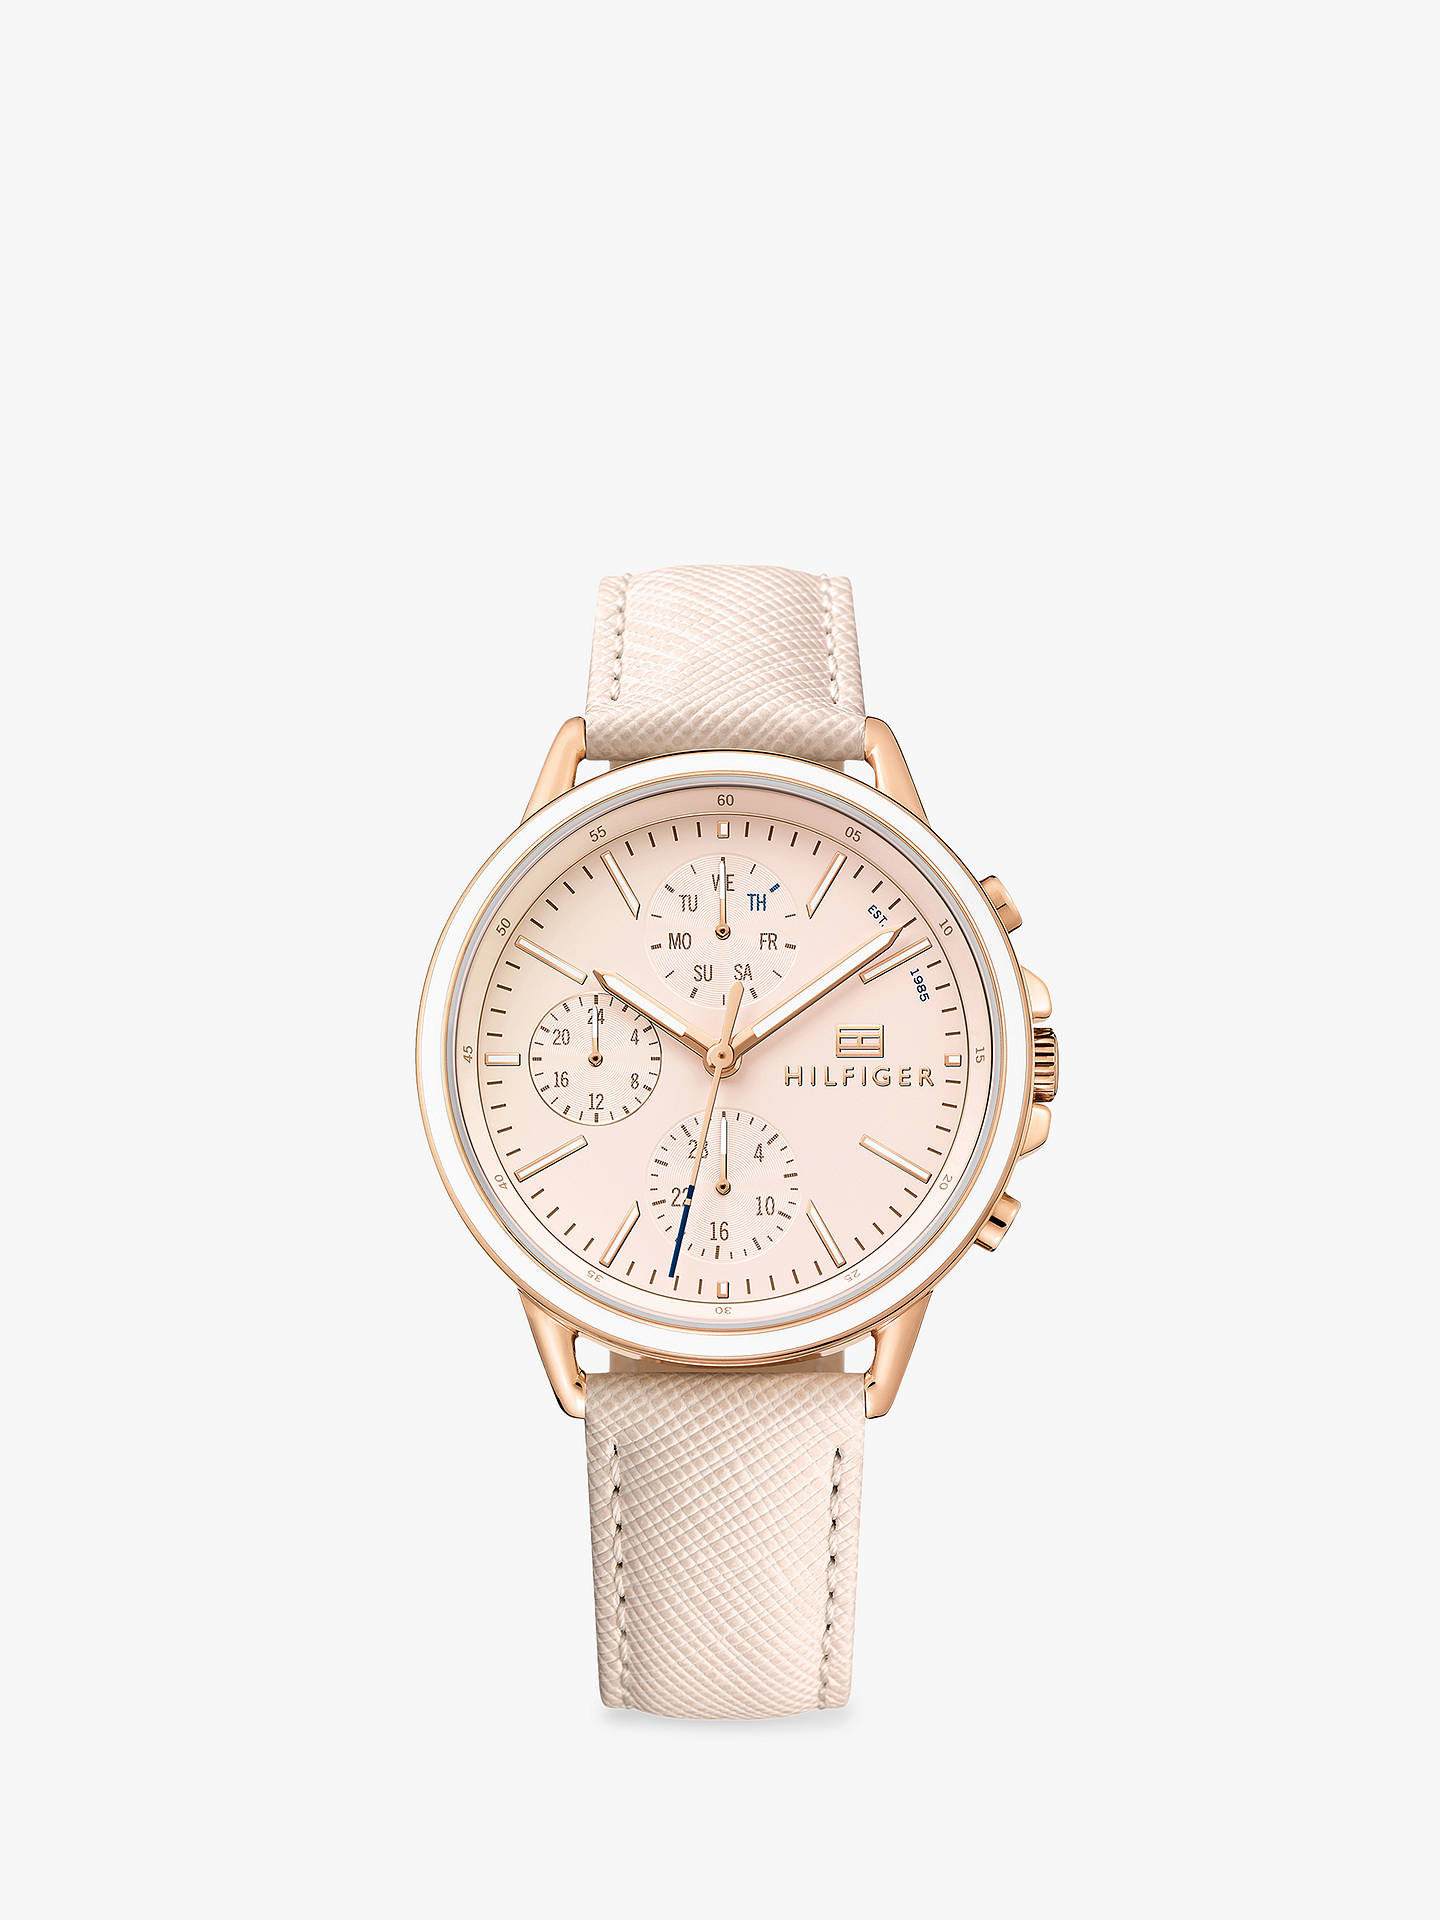 6226327a0 Buy Tommy Hilfiger Women's Carly Chronograph Leather Strap Watch, Blush  1781789 Online at johnlewis.